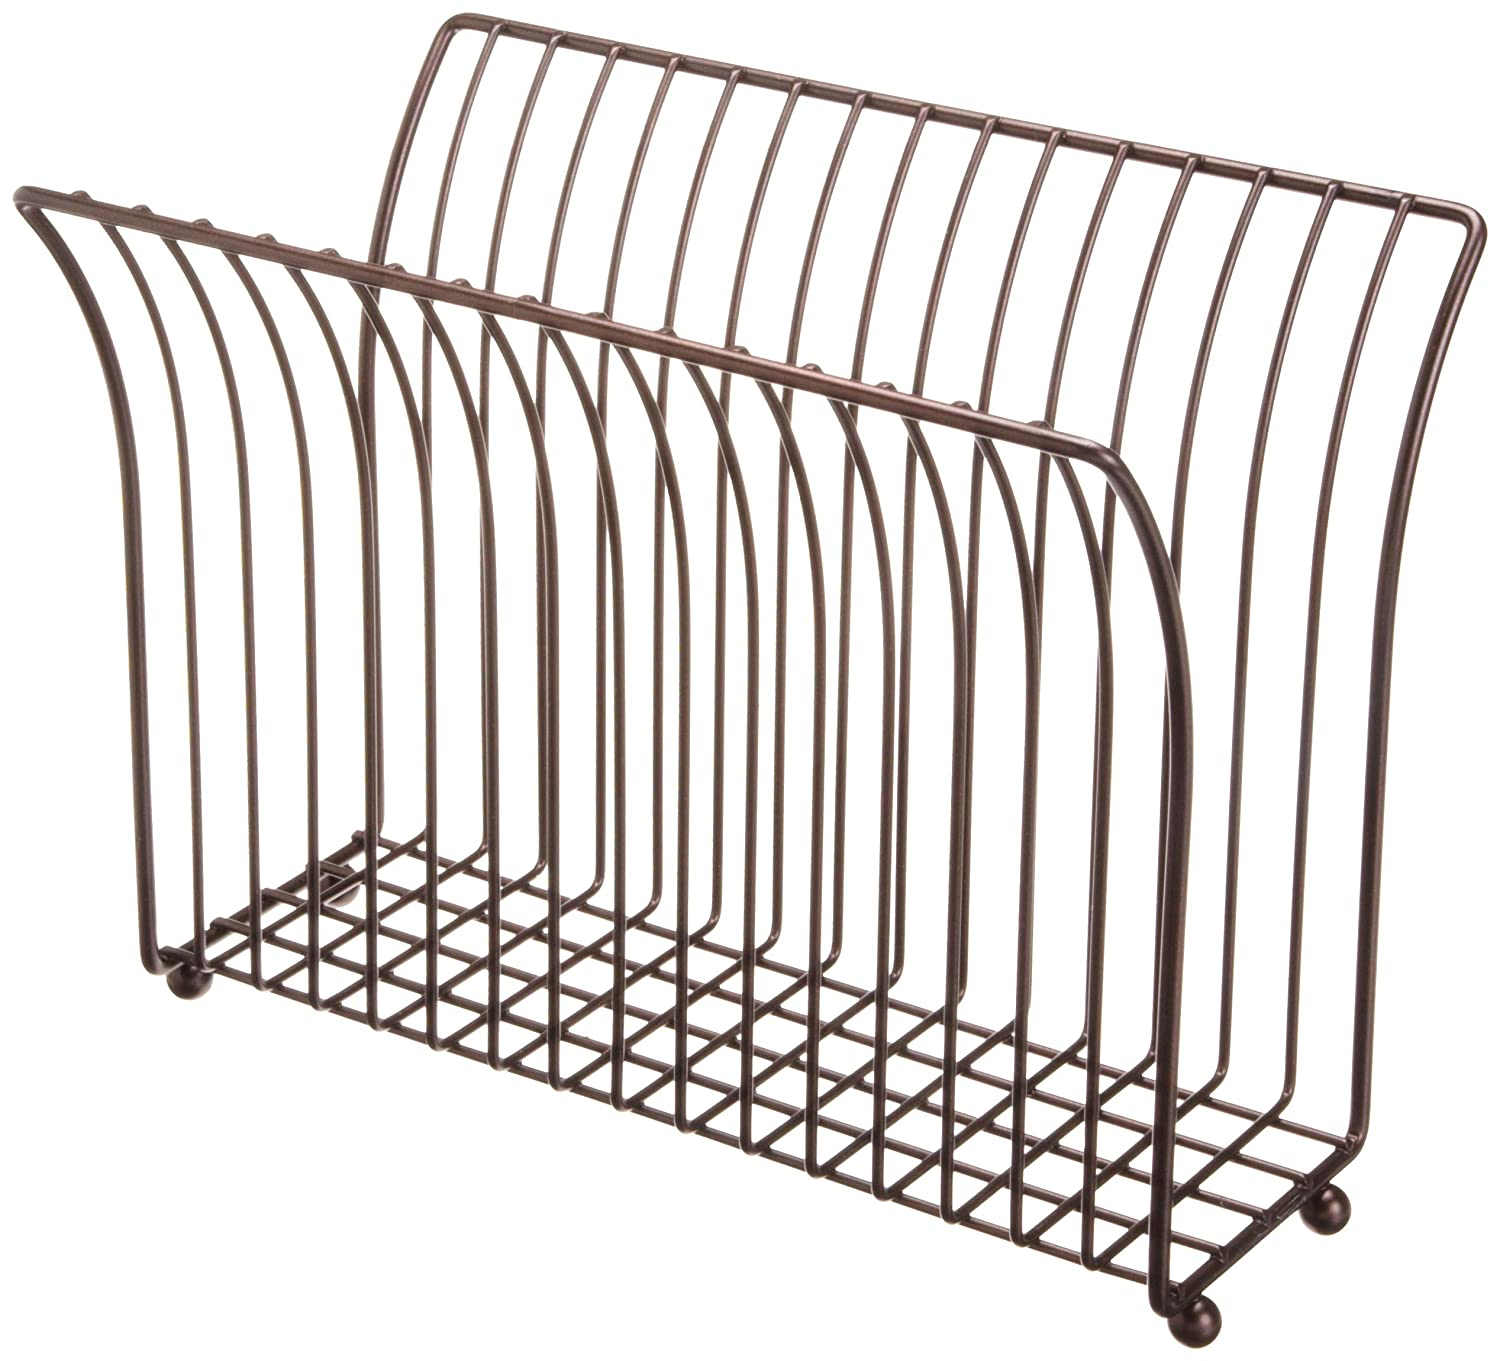 Taymor Coated Oil Rubbed Bronze Modern Magazine Rack 02-DAS1222CORB